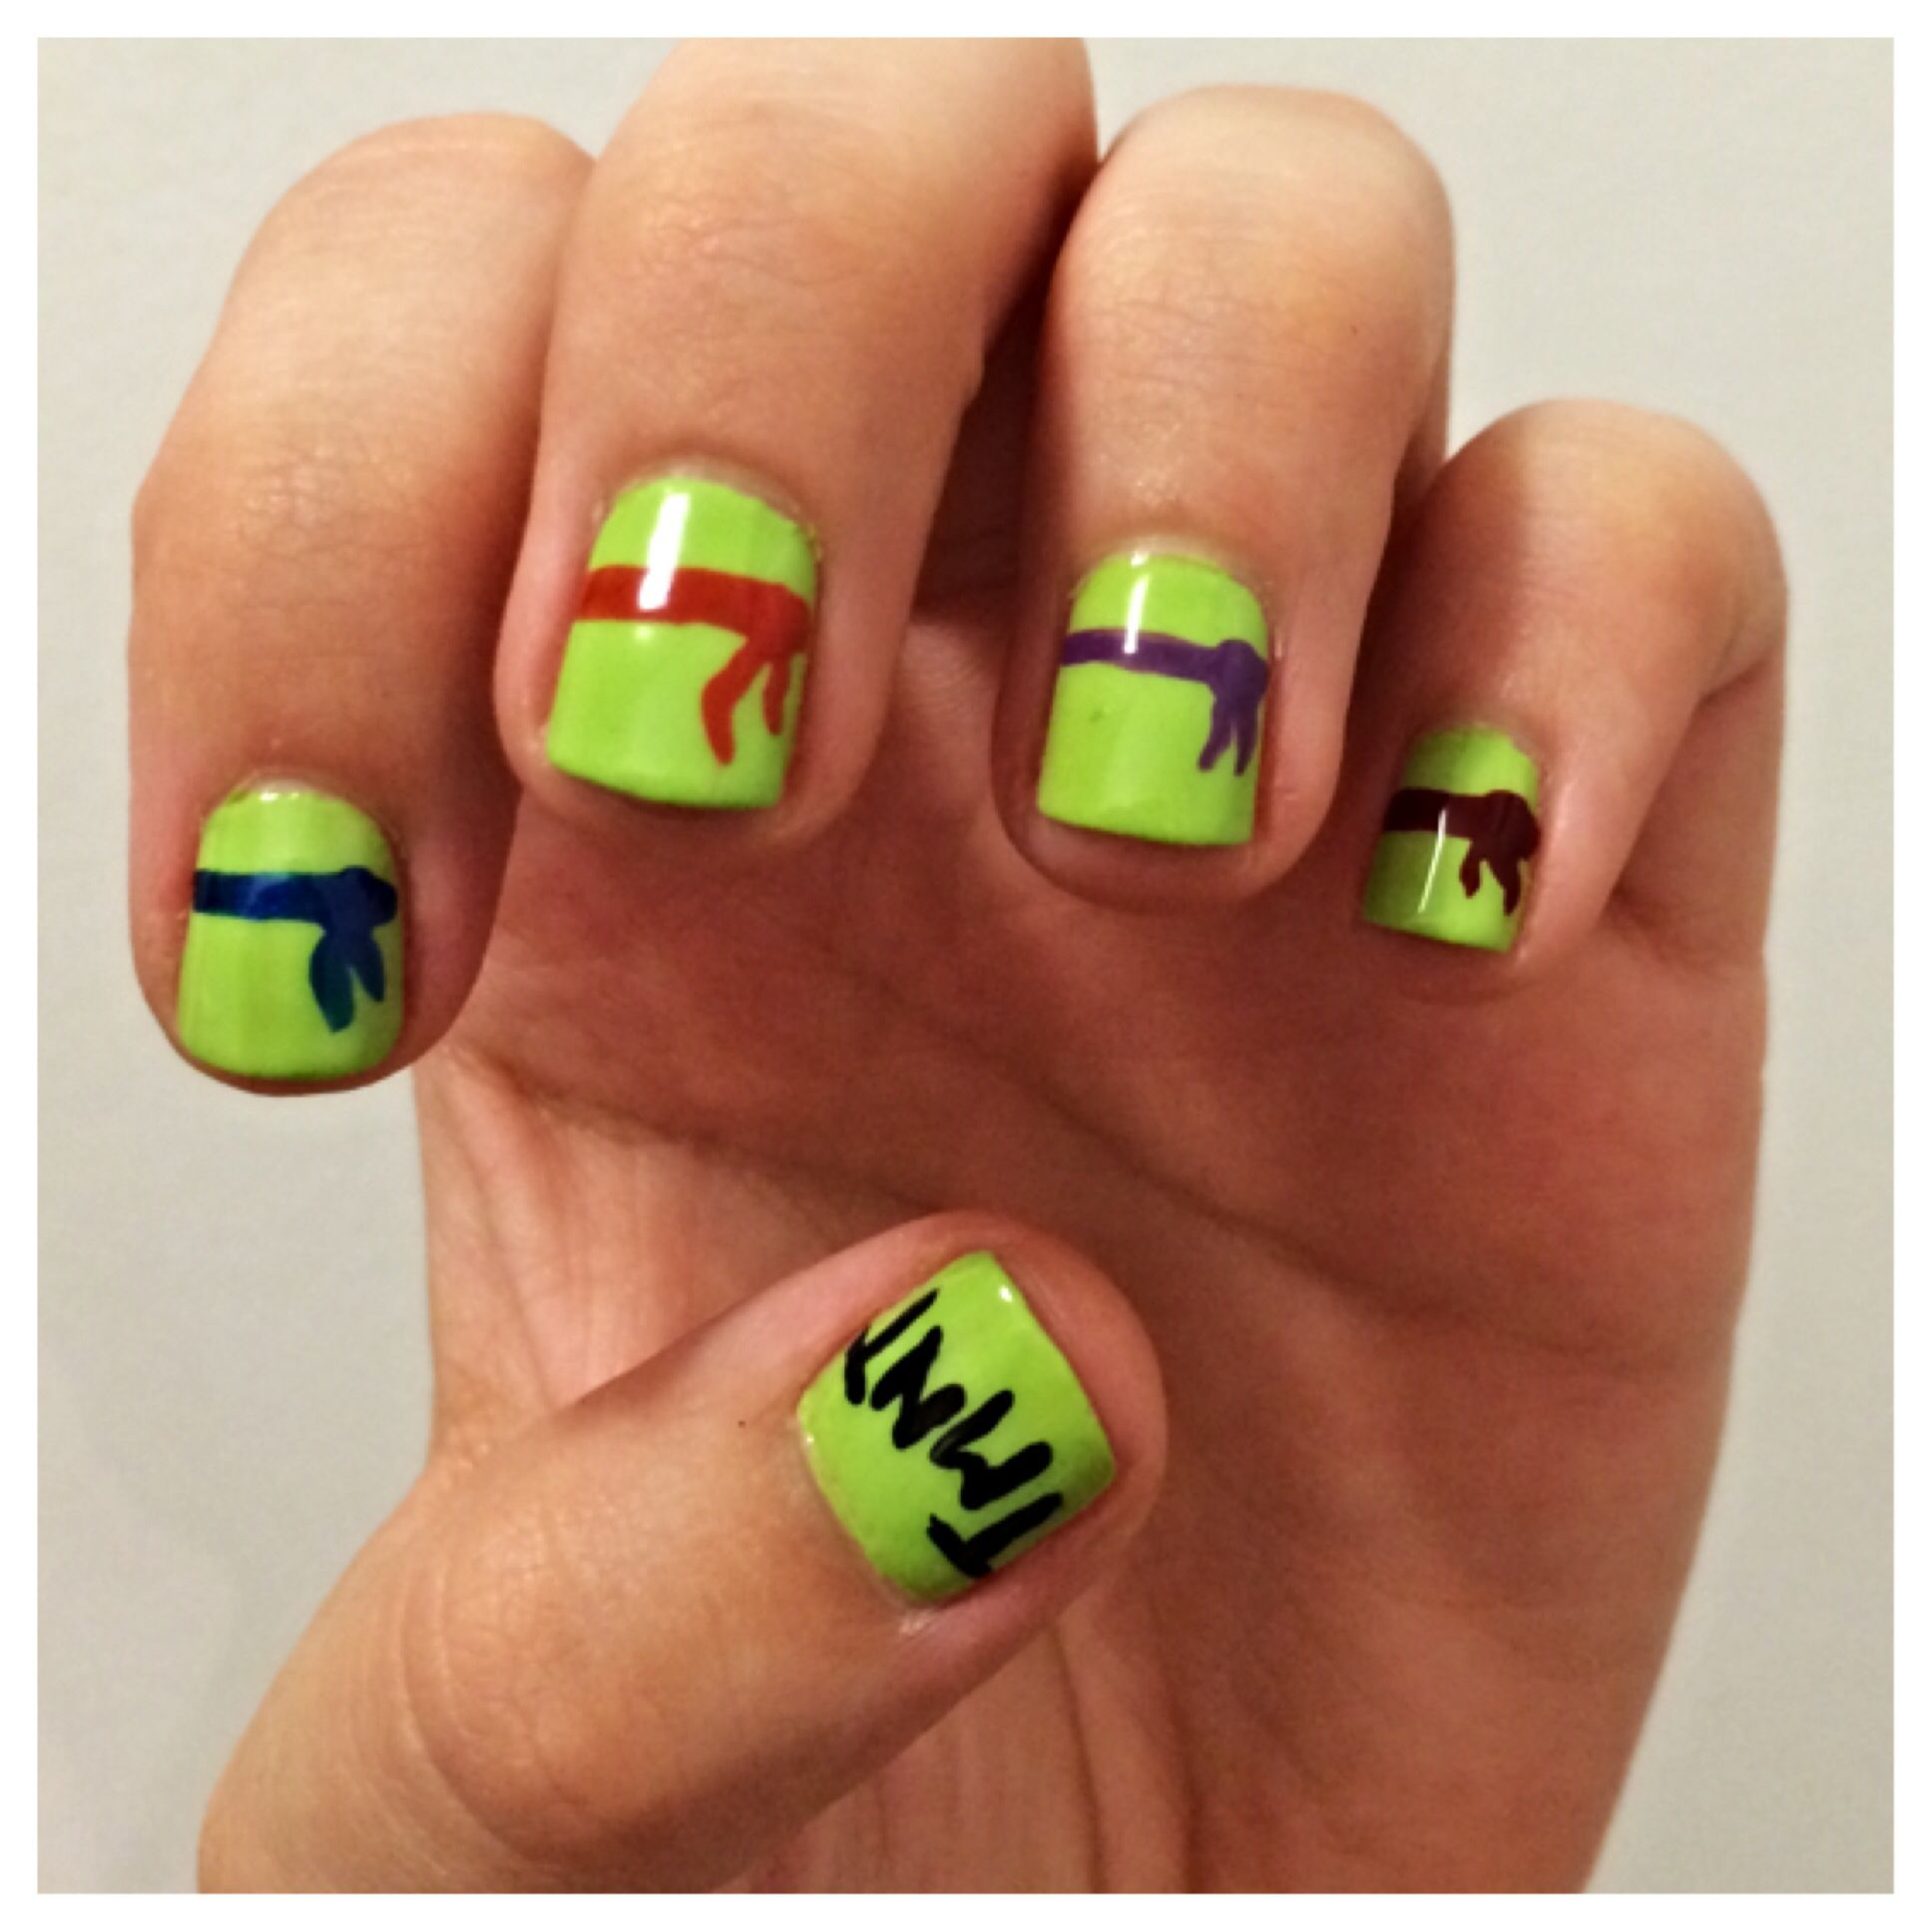 Ninja turtle nails! | nail art | Pinterest | Ninja turtle nails ...